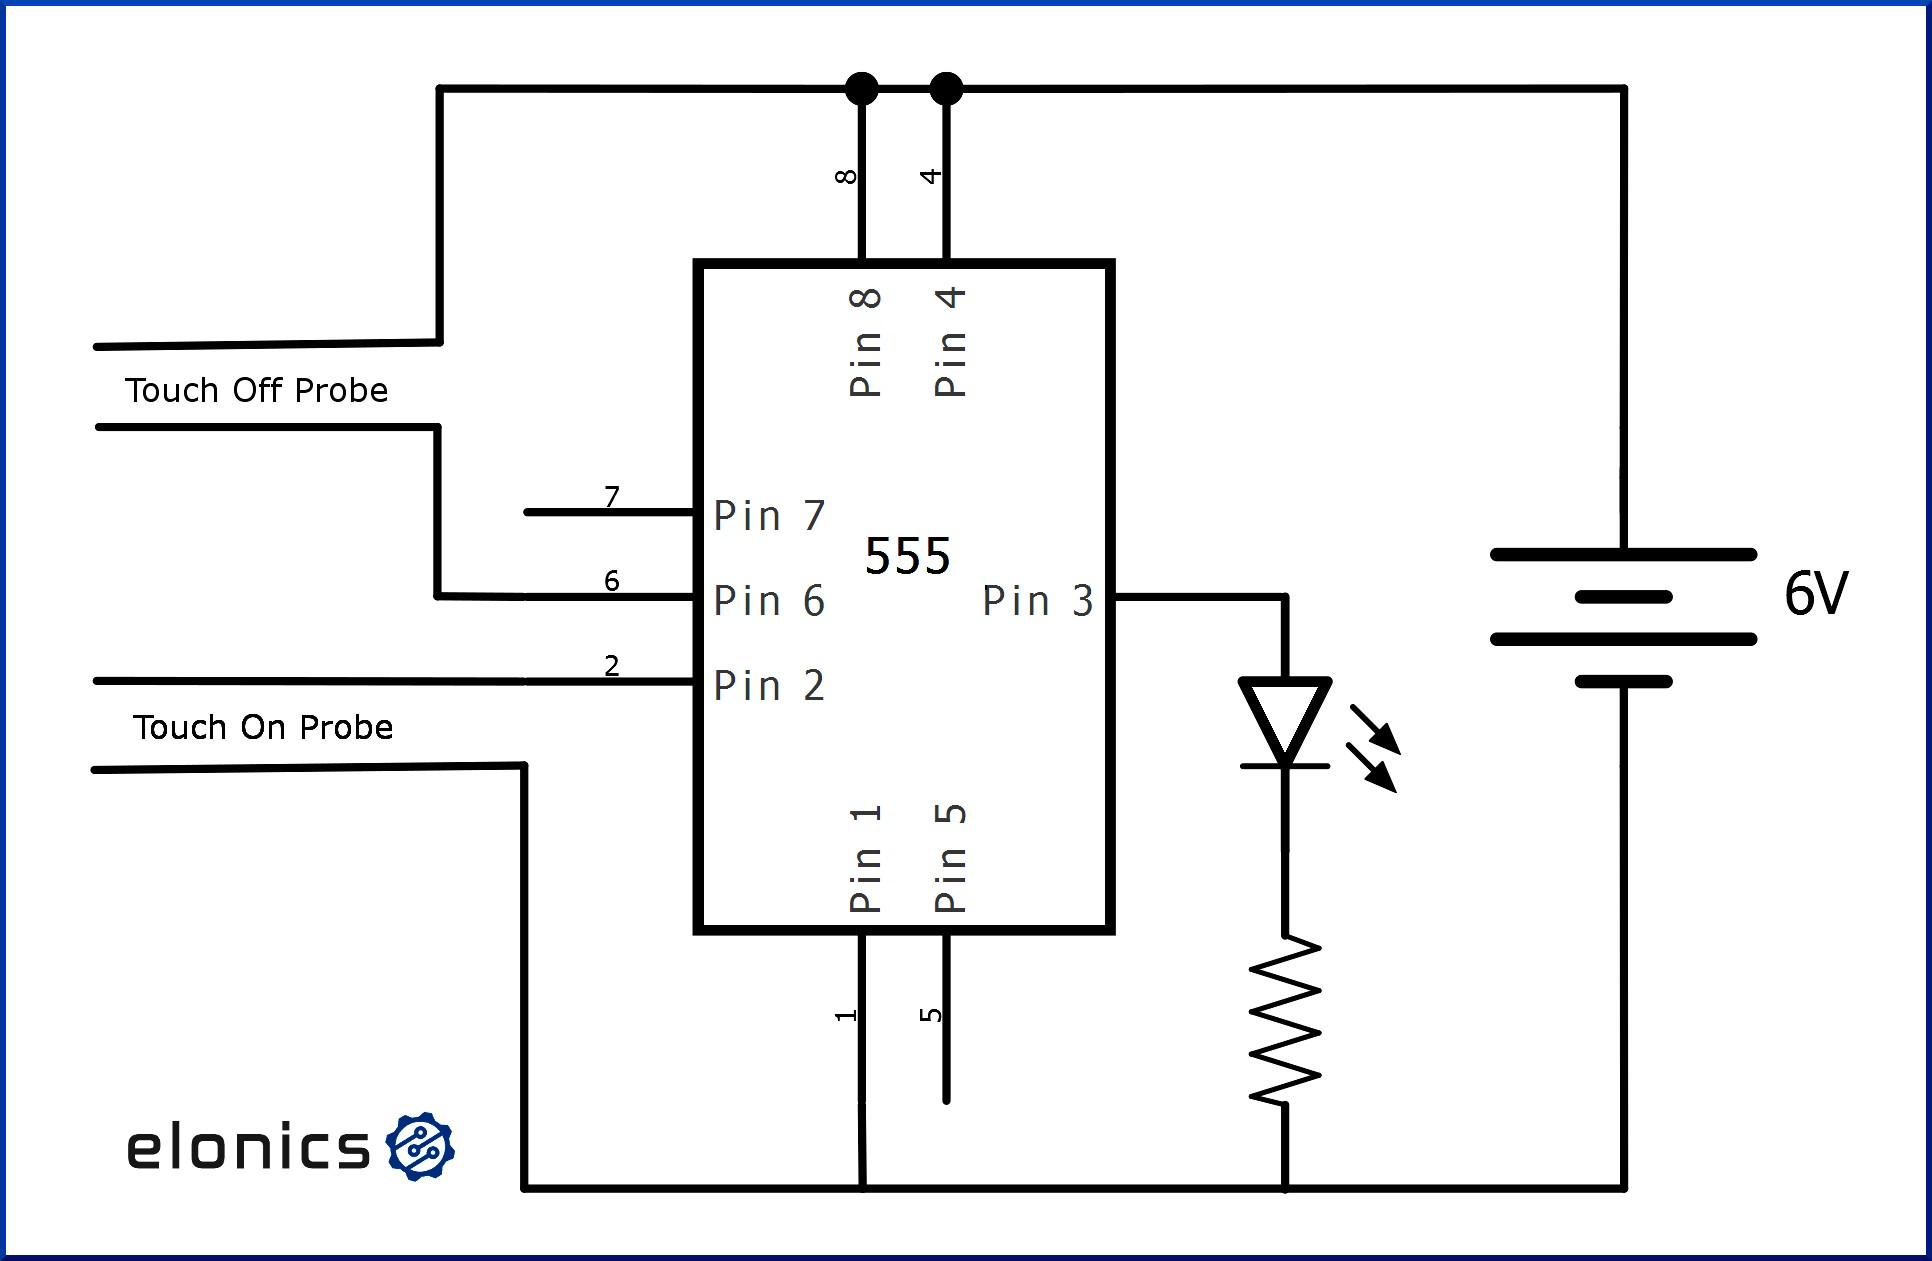 Delightful Touch f Switch Using Timer Ic Elonics Circuit Schematic Full Full size